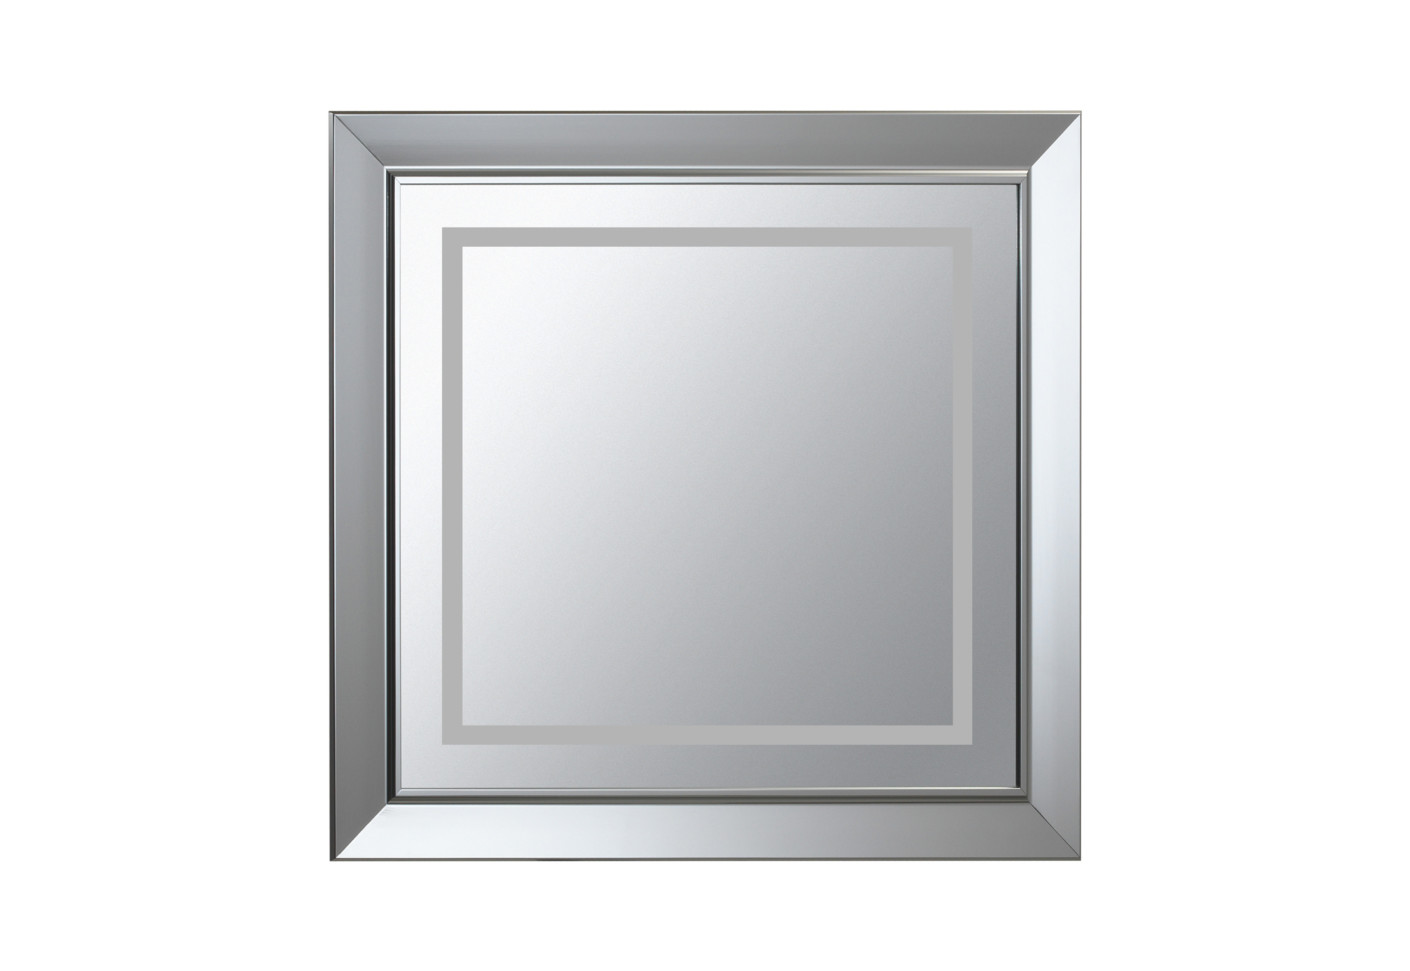 Lb3 square mirror by laufen stylepark for Square mirror